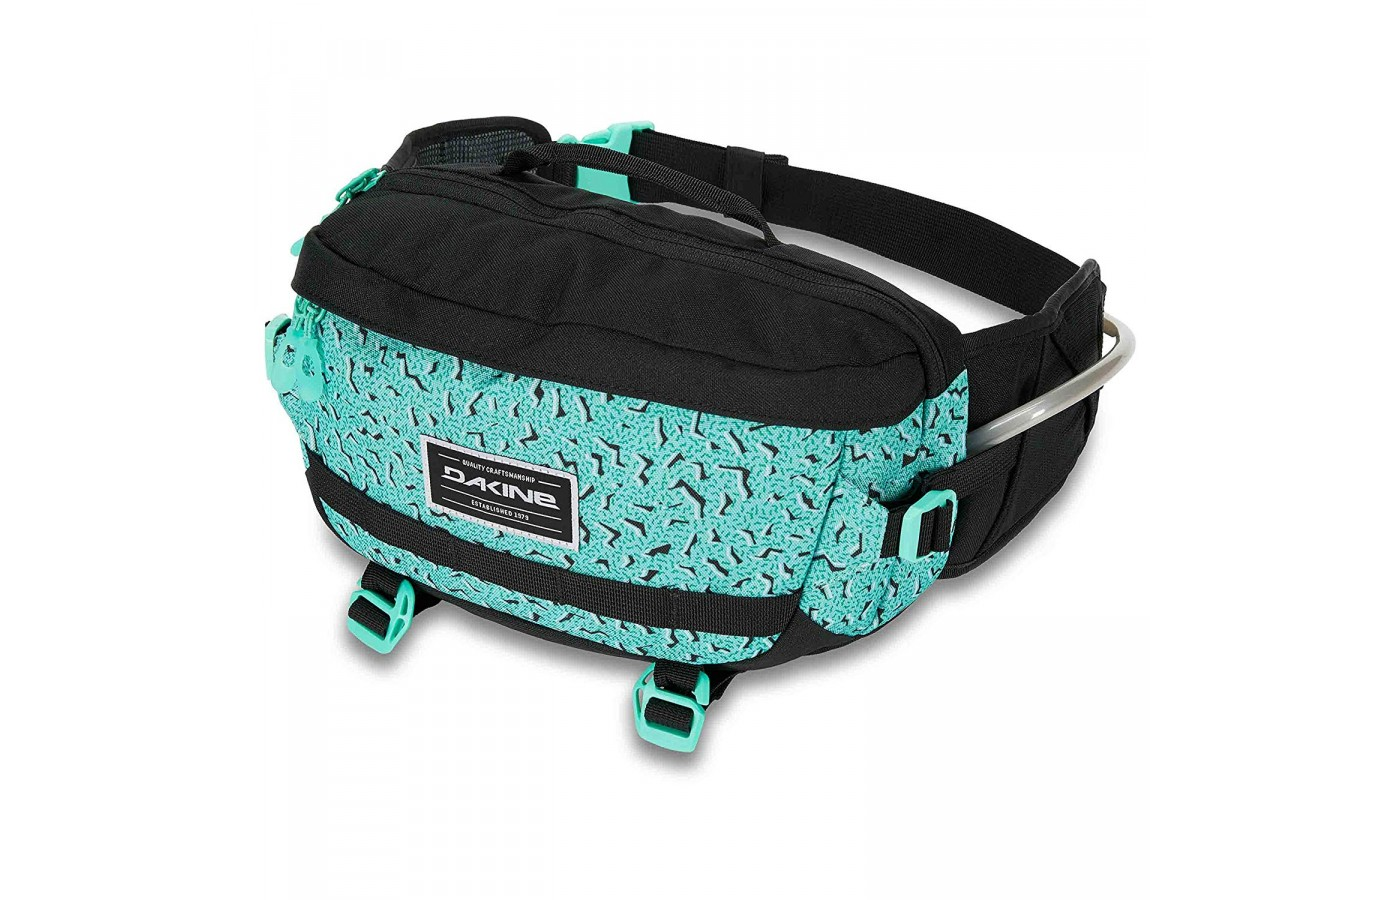 The compact Hot Laps waist pack by Dakine.